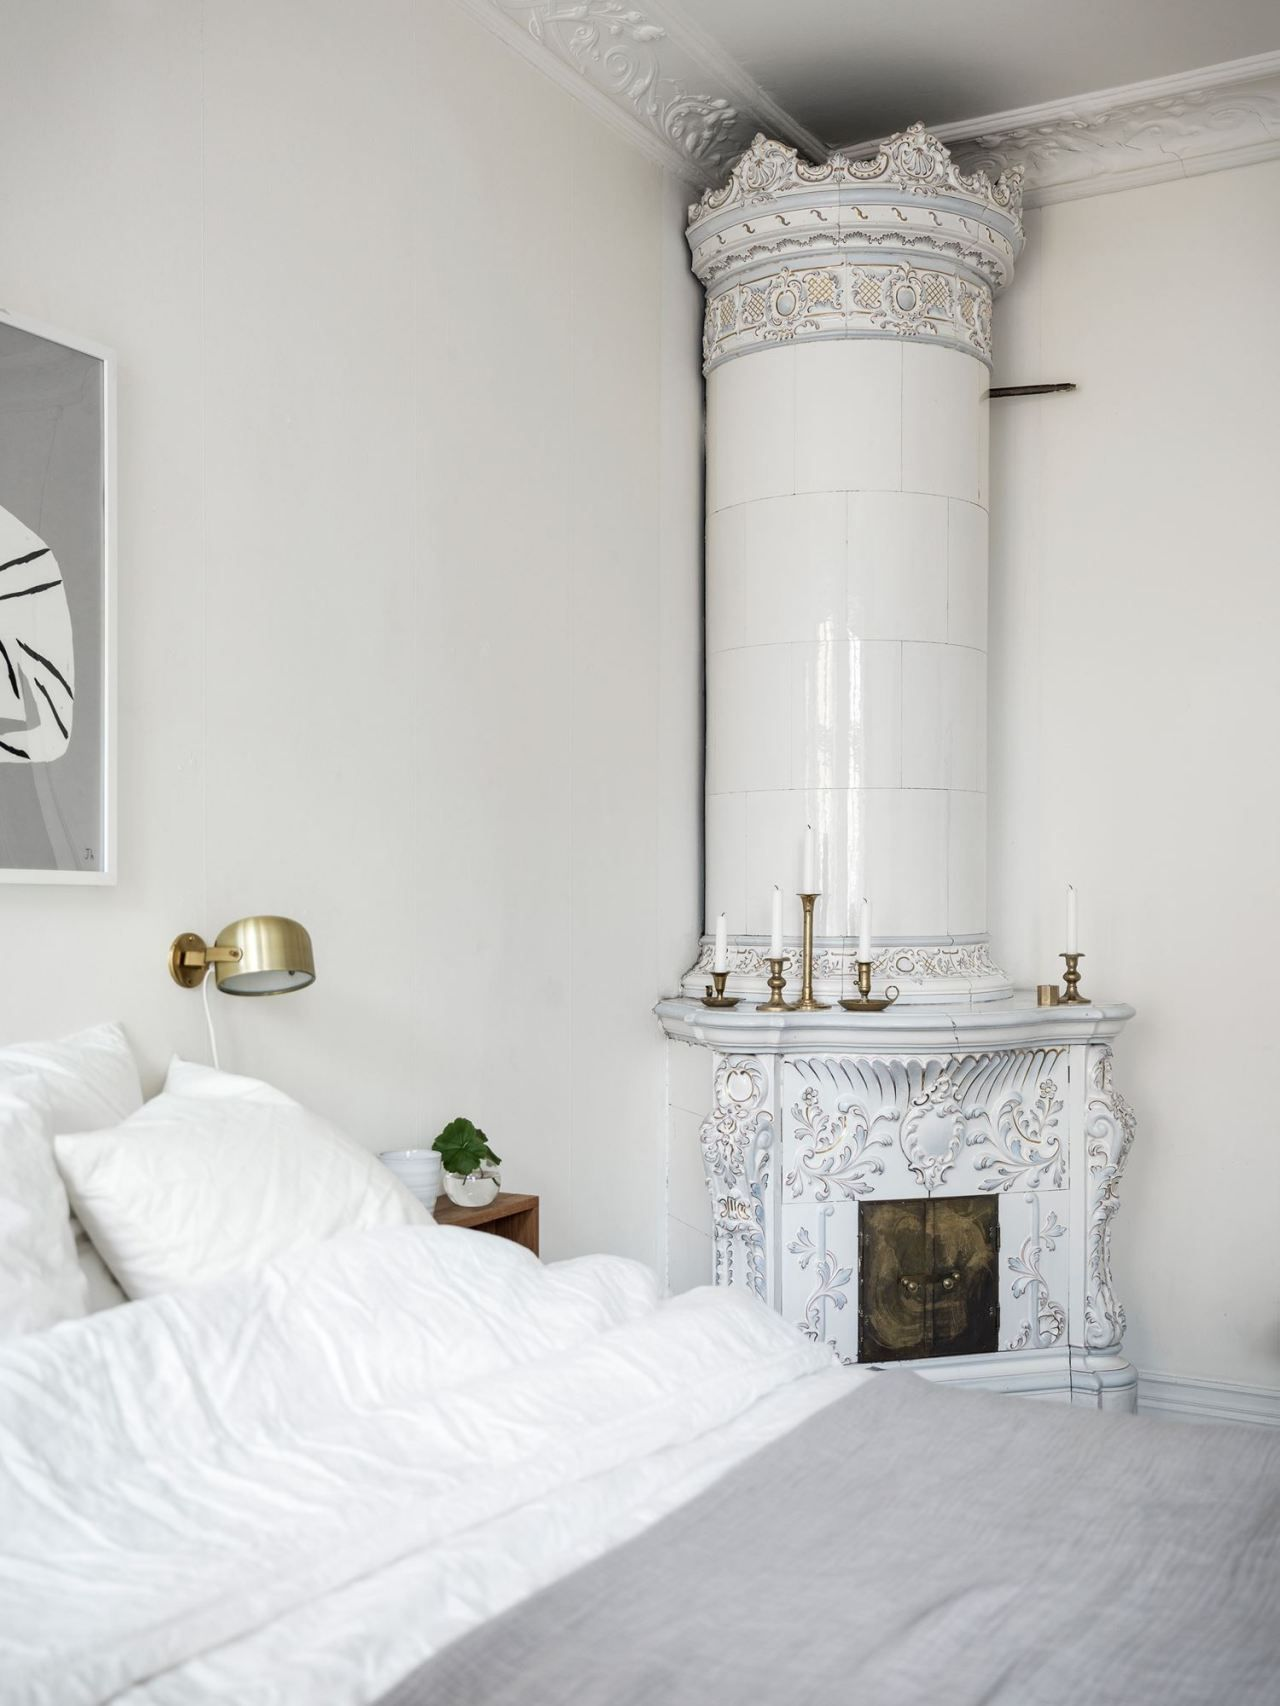 Brass scandi wall sconce bedroom via Kvarteret Makleri